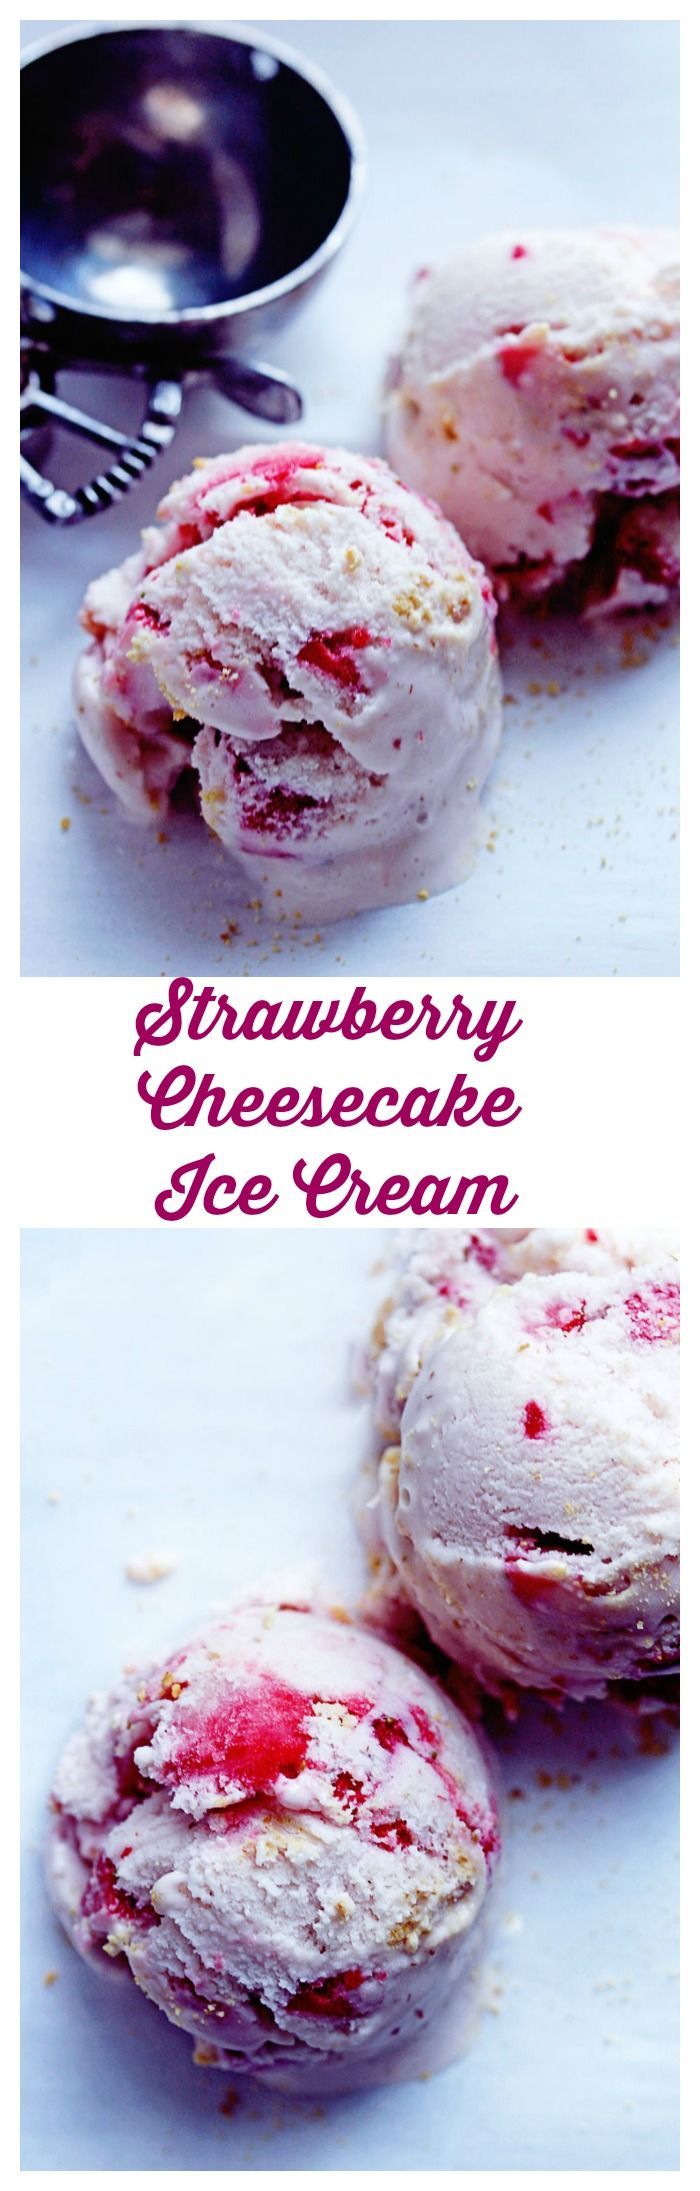 Strawberry Cheesecake Ice Cream | Grandbaby Cakes